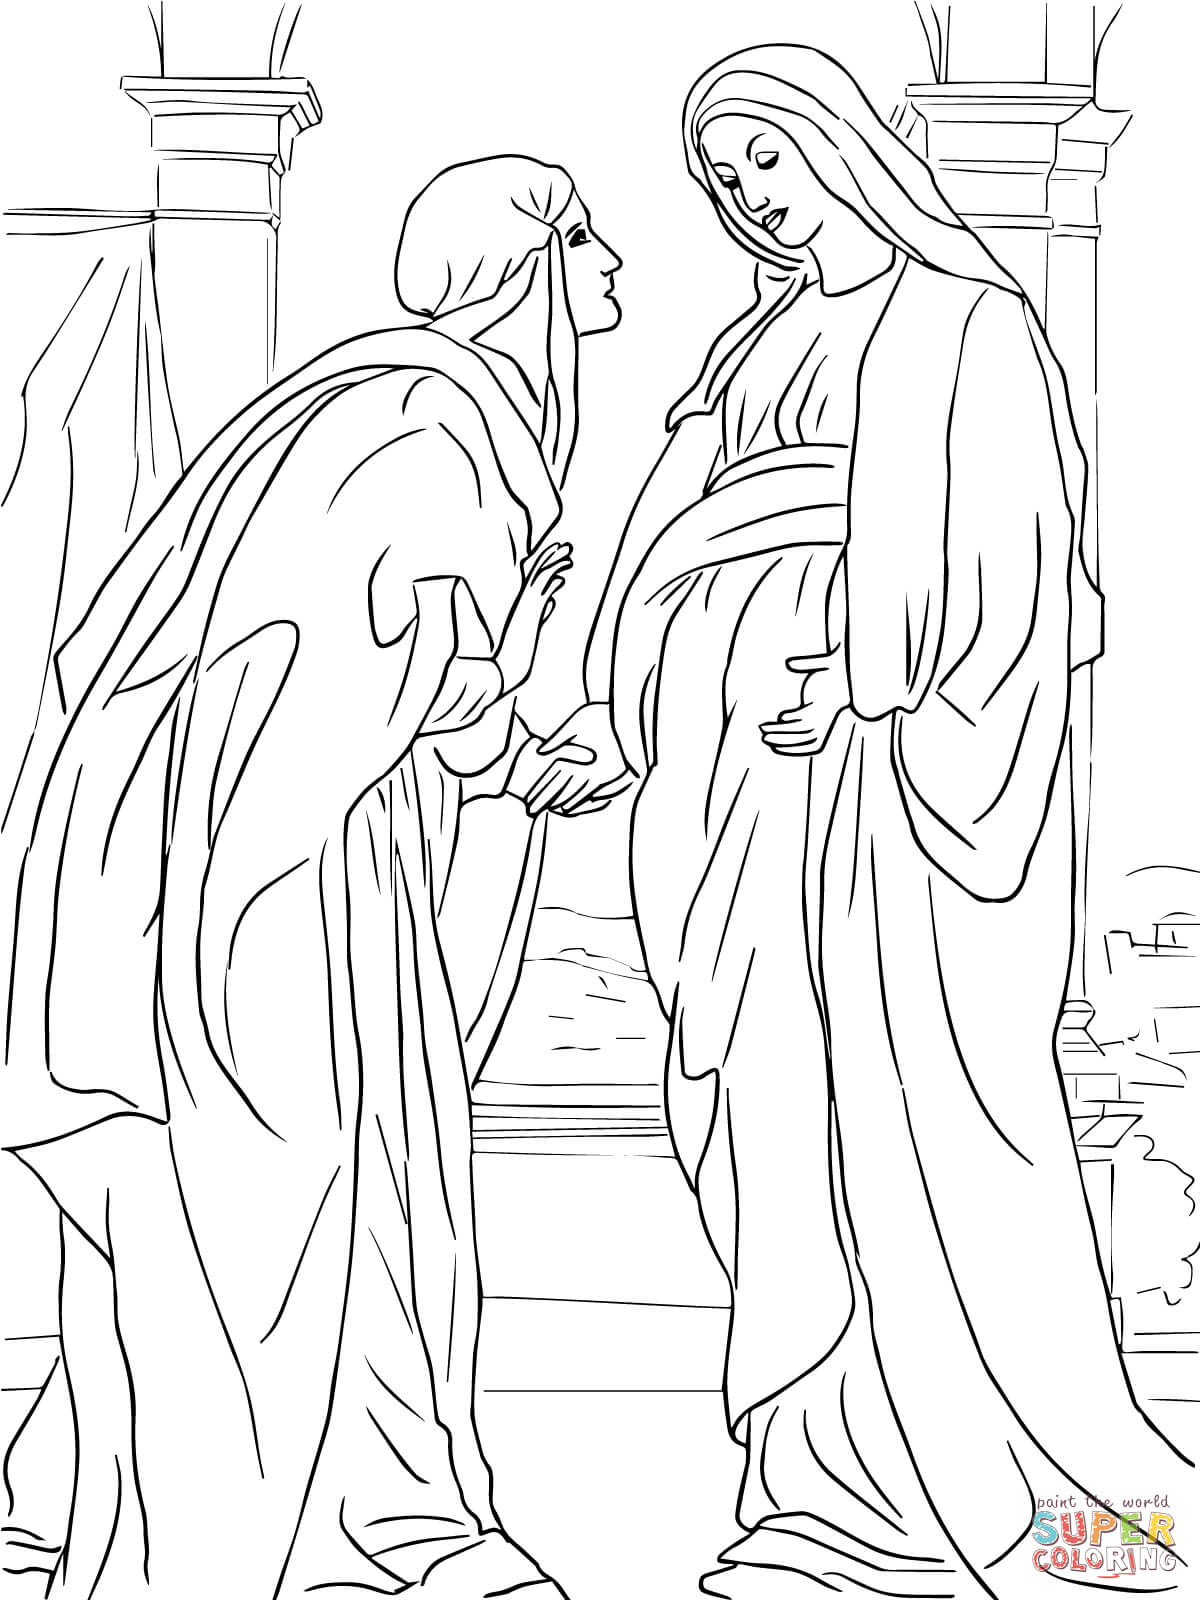 Coloring Pages Angel Gabriel Coloring Page mary and angel coloring page az pages visitation of to elizabeth free printable